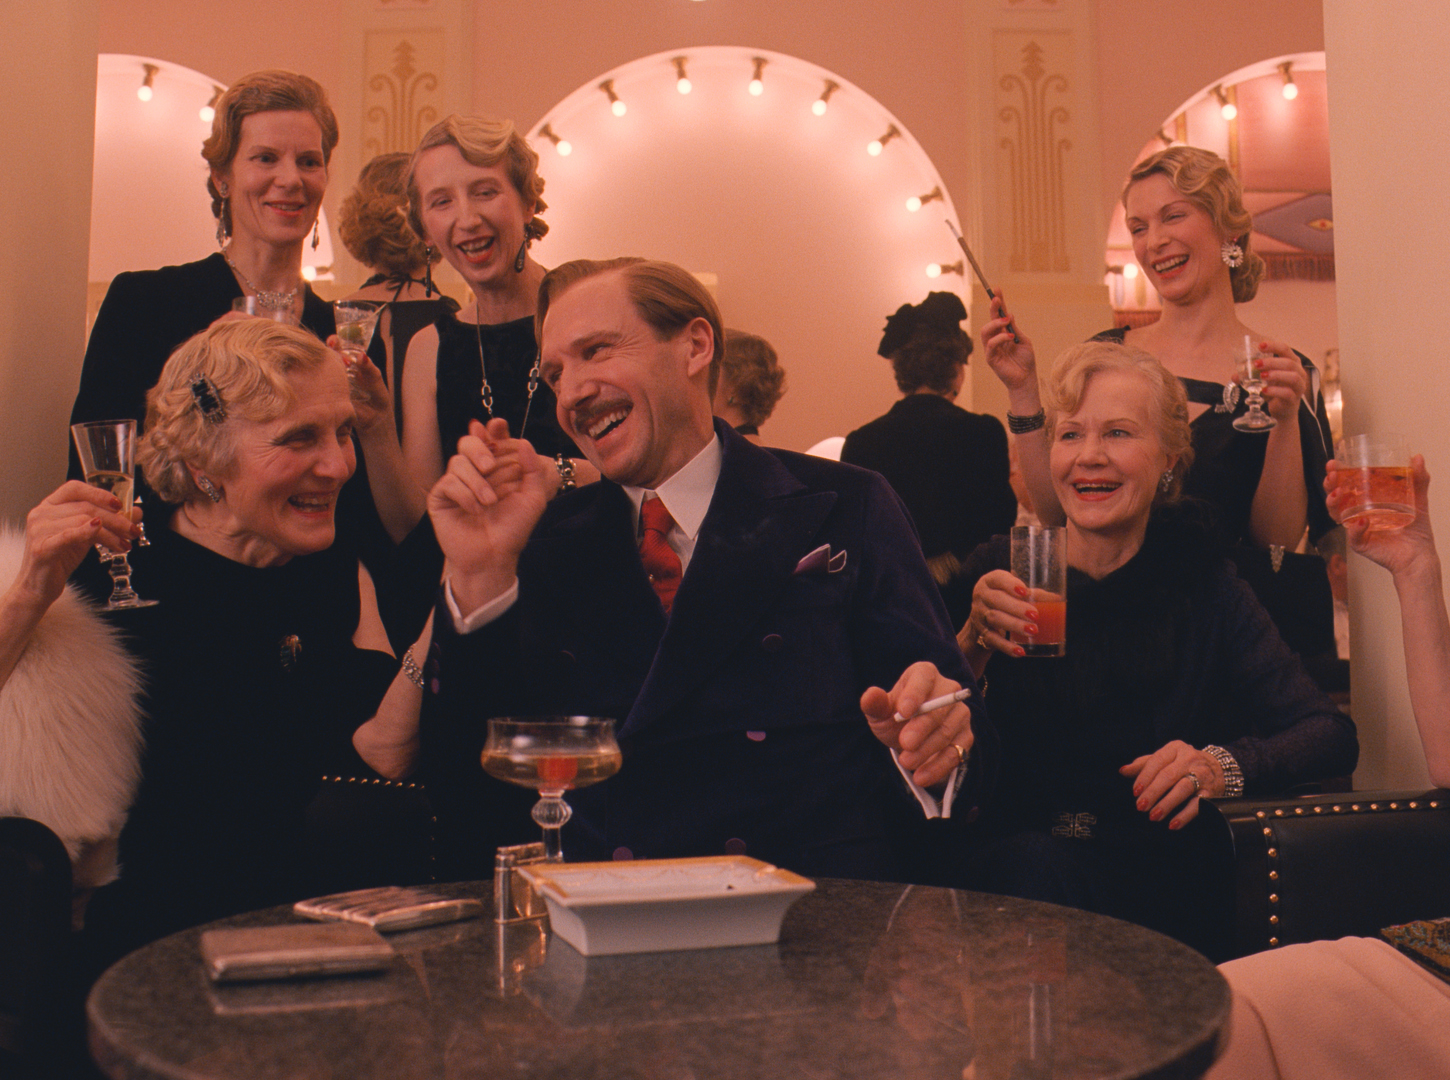 Wes Anderson is once again larger than life